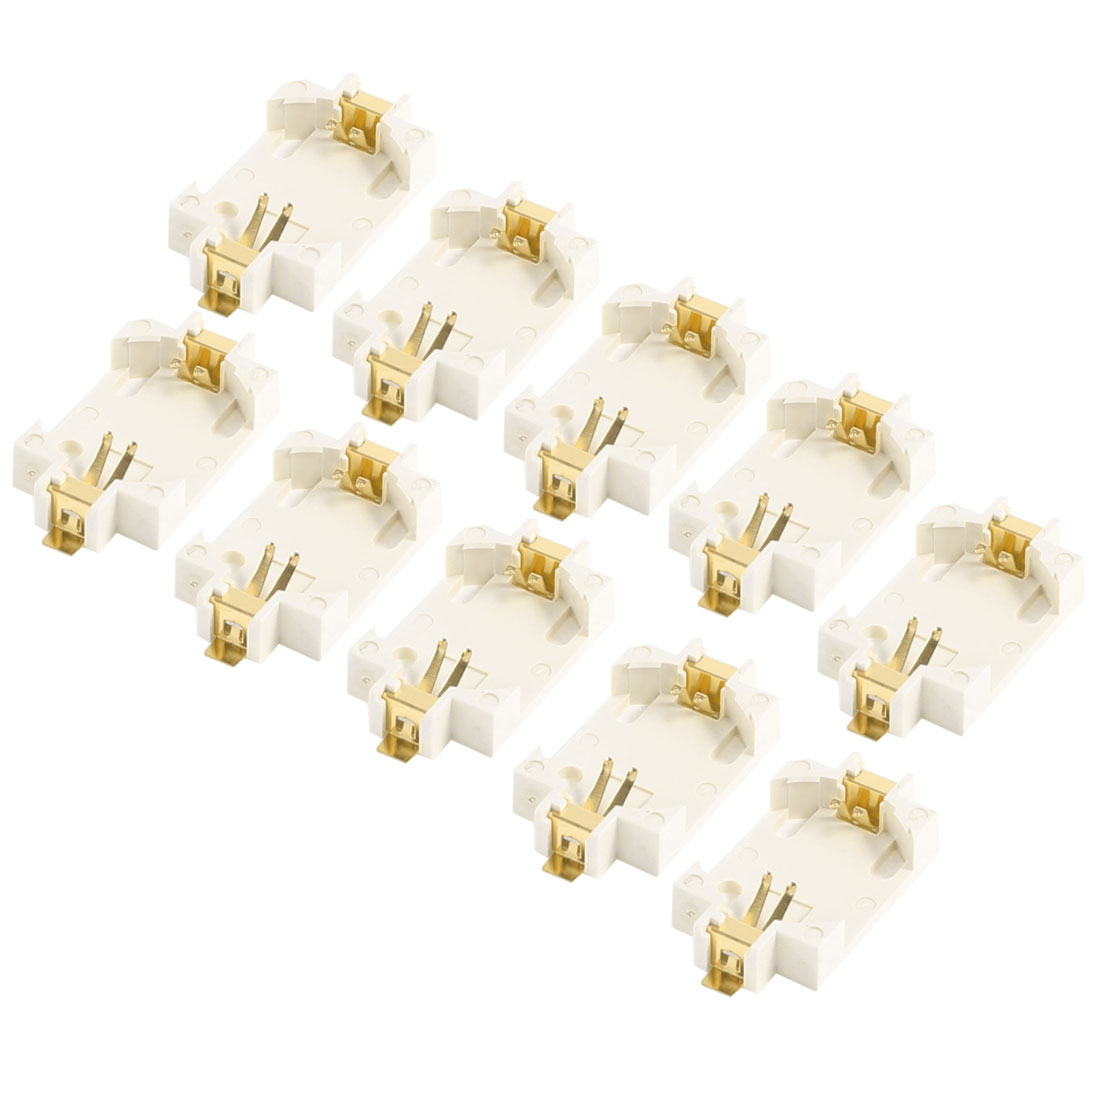 10 Pcs Off White Plastic Button Coin Cell Battery Socket Holder for CR2032